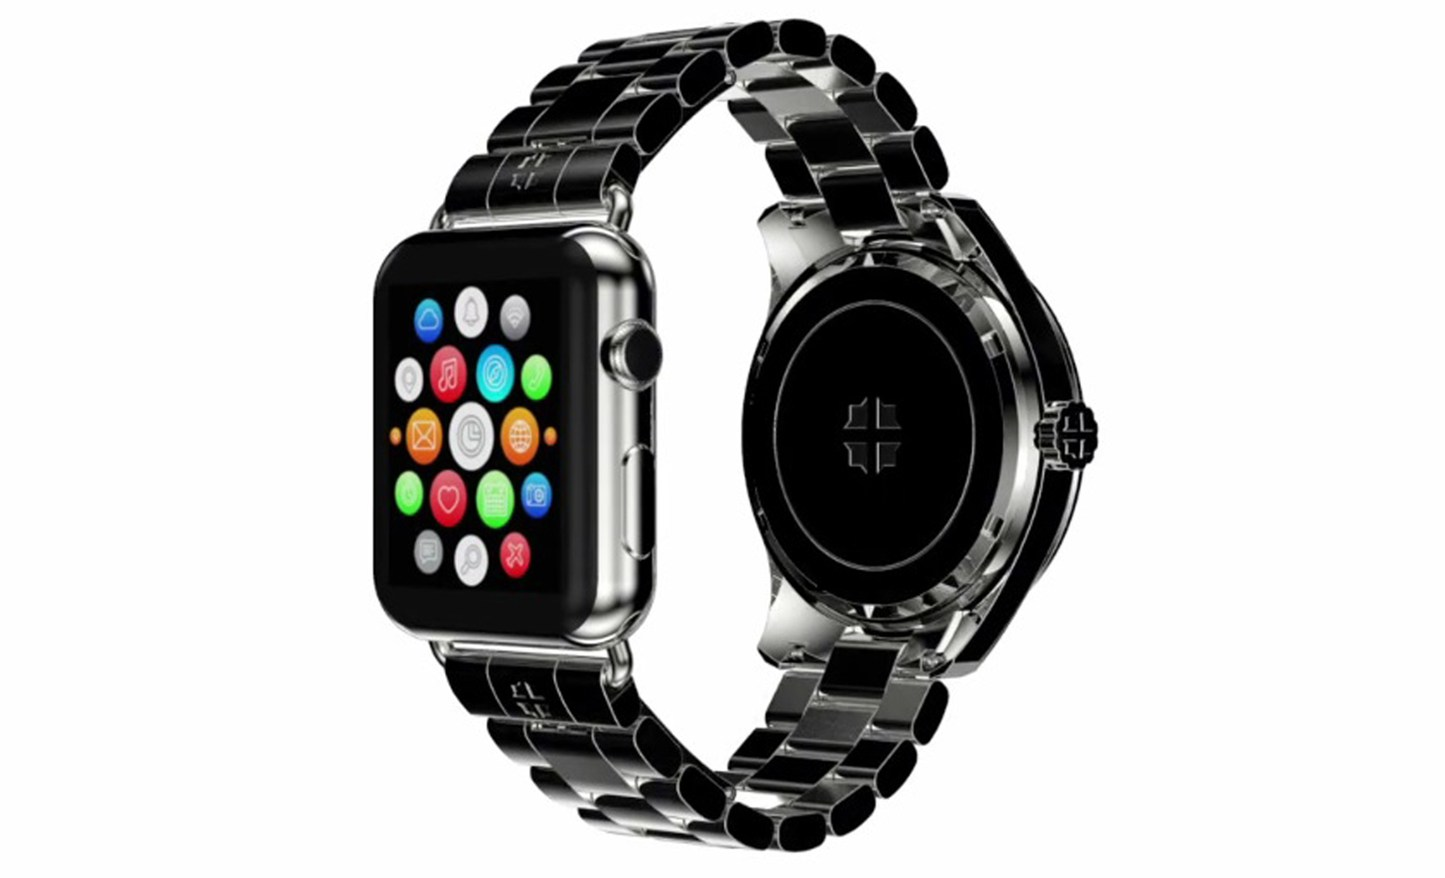 Apple Watch hp GQ 07Aug15 pr b 1445x878 - Relógio 2 em 1: Analógico + Apple Watch